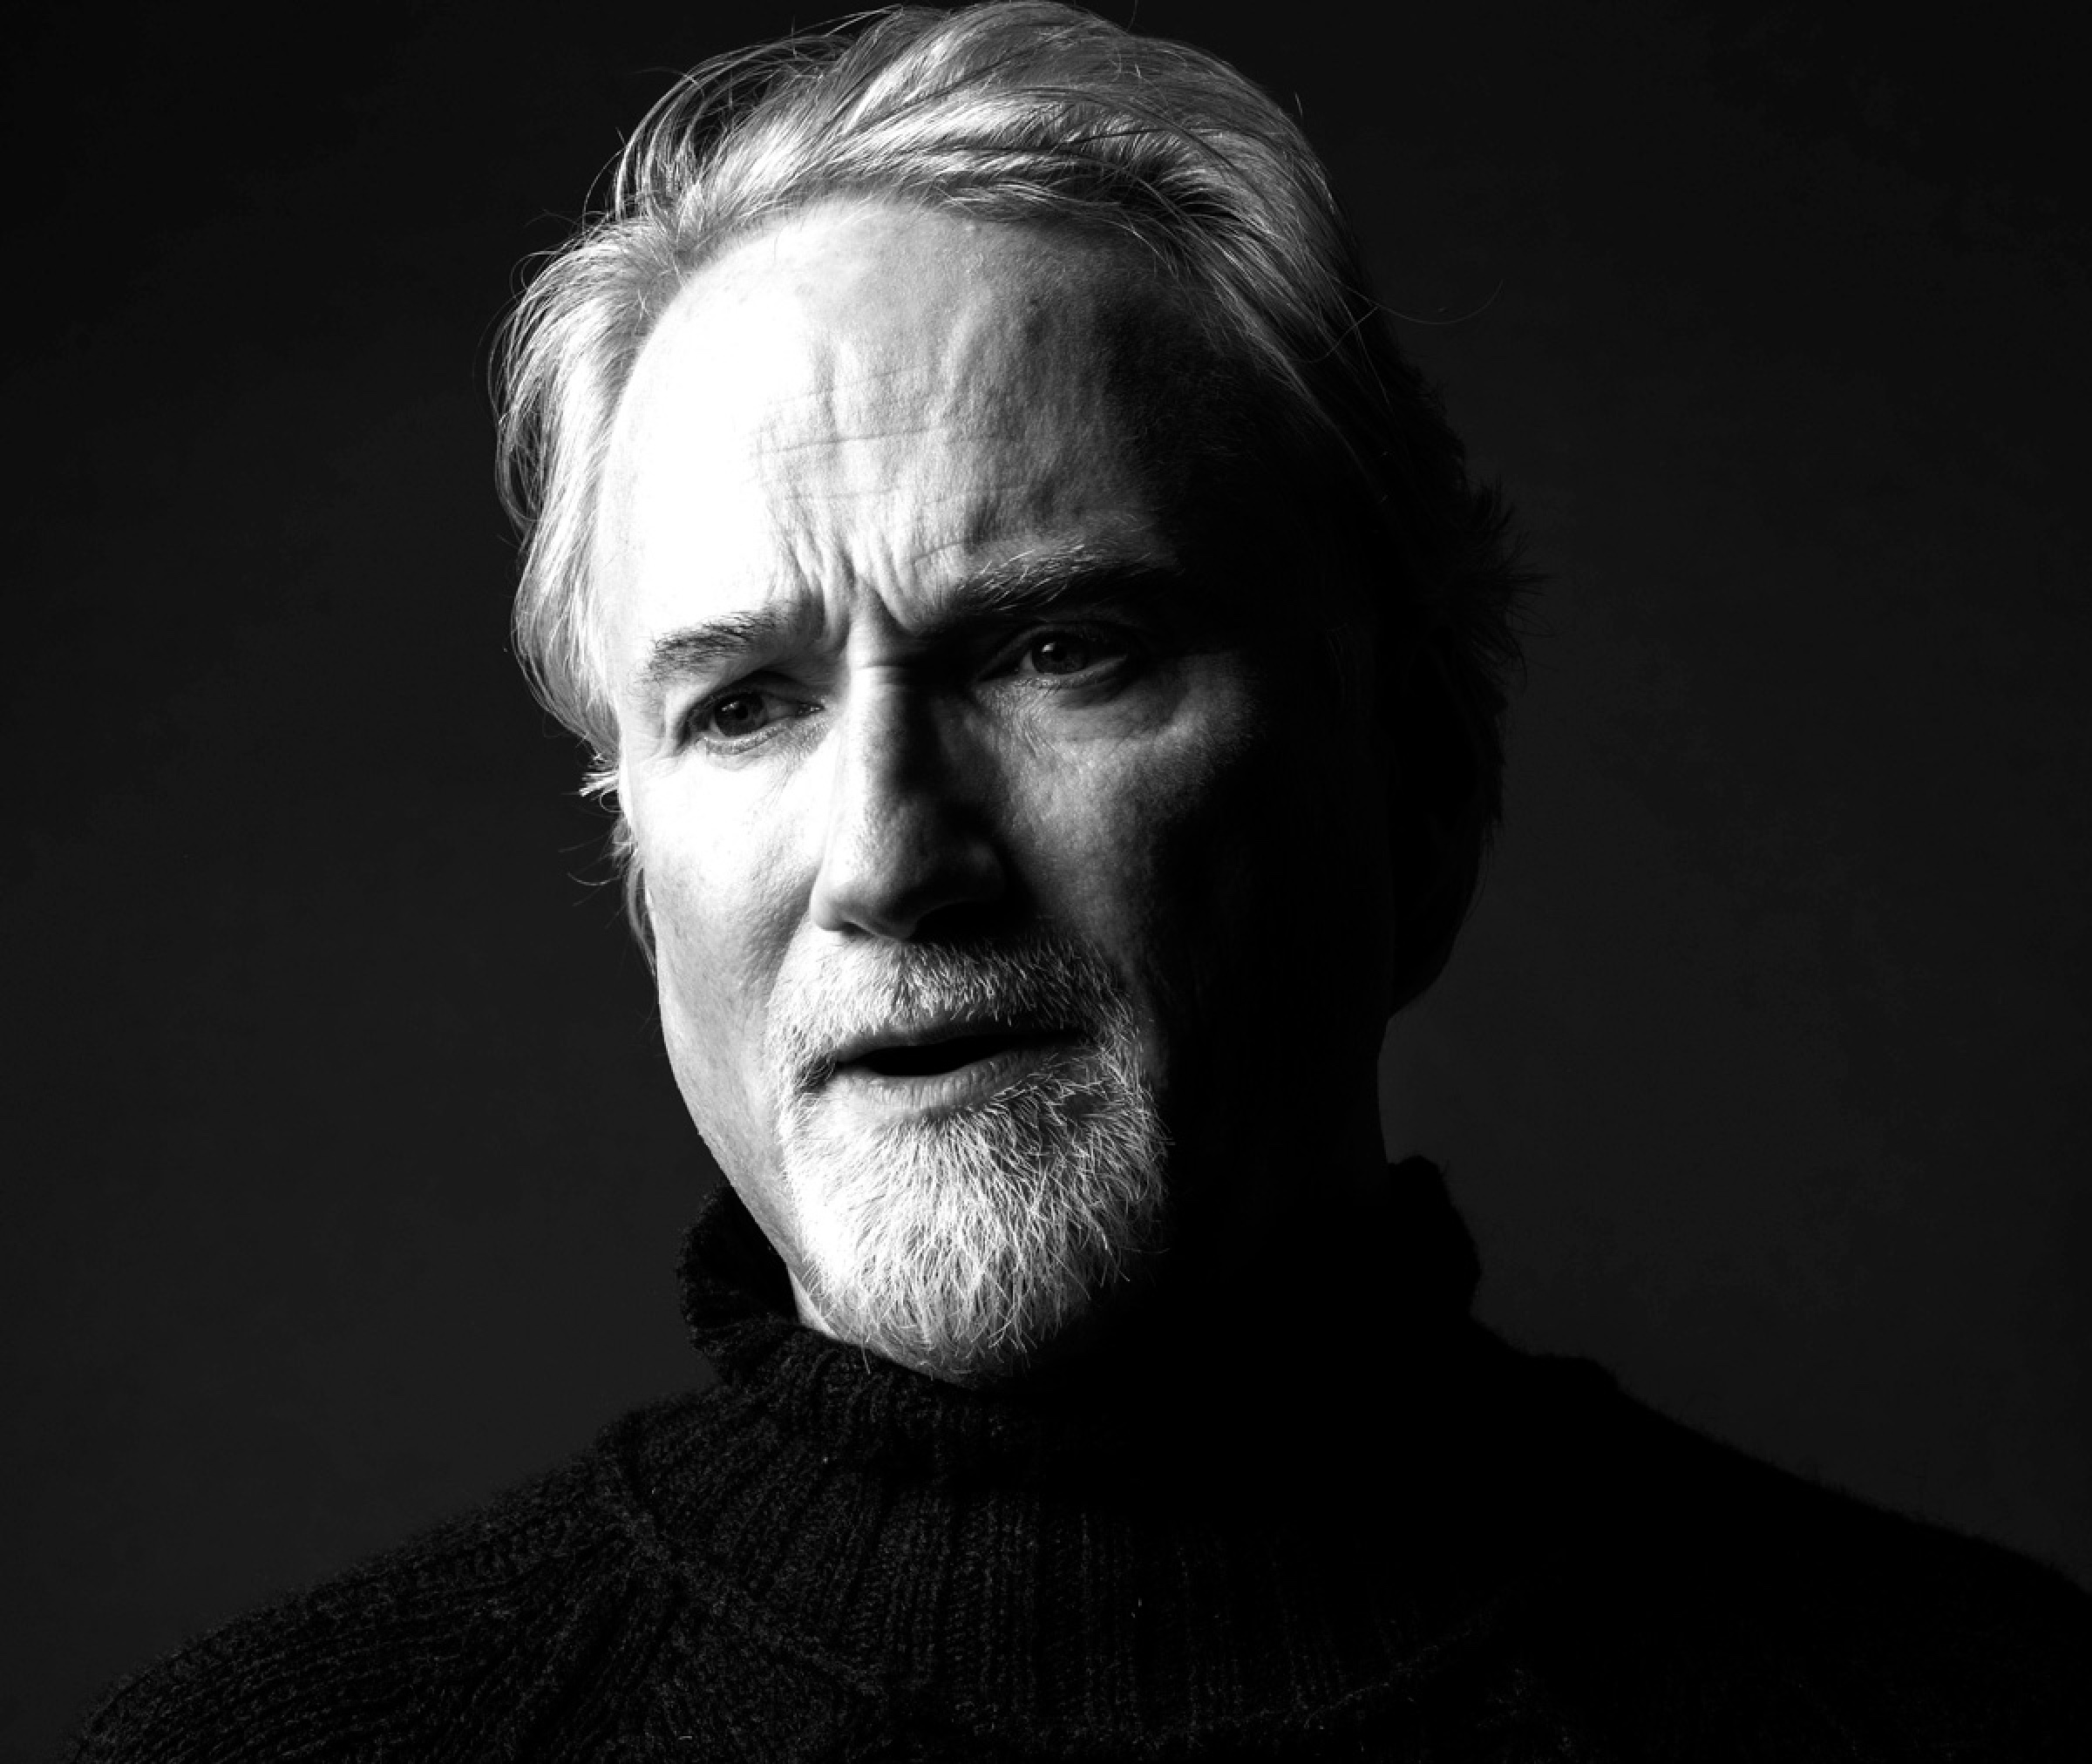 A high-contrast black-and-white portrait of David Fincher. He wears a black turtleneck and looks past the camera.